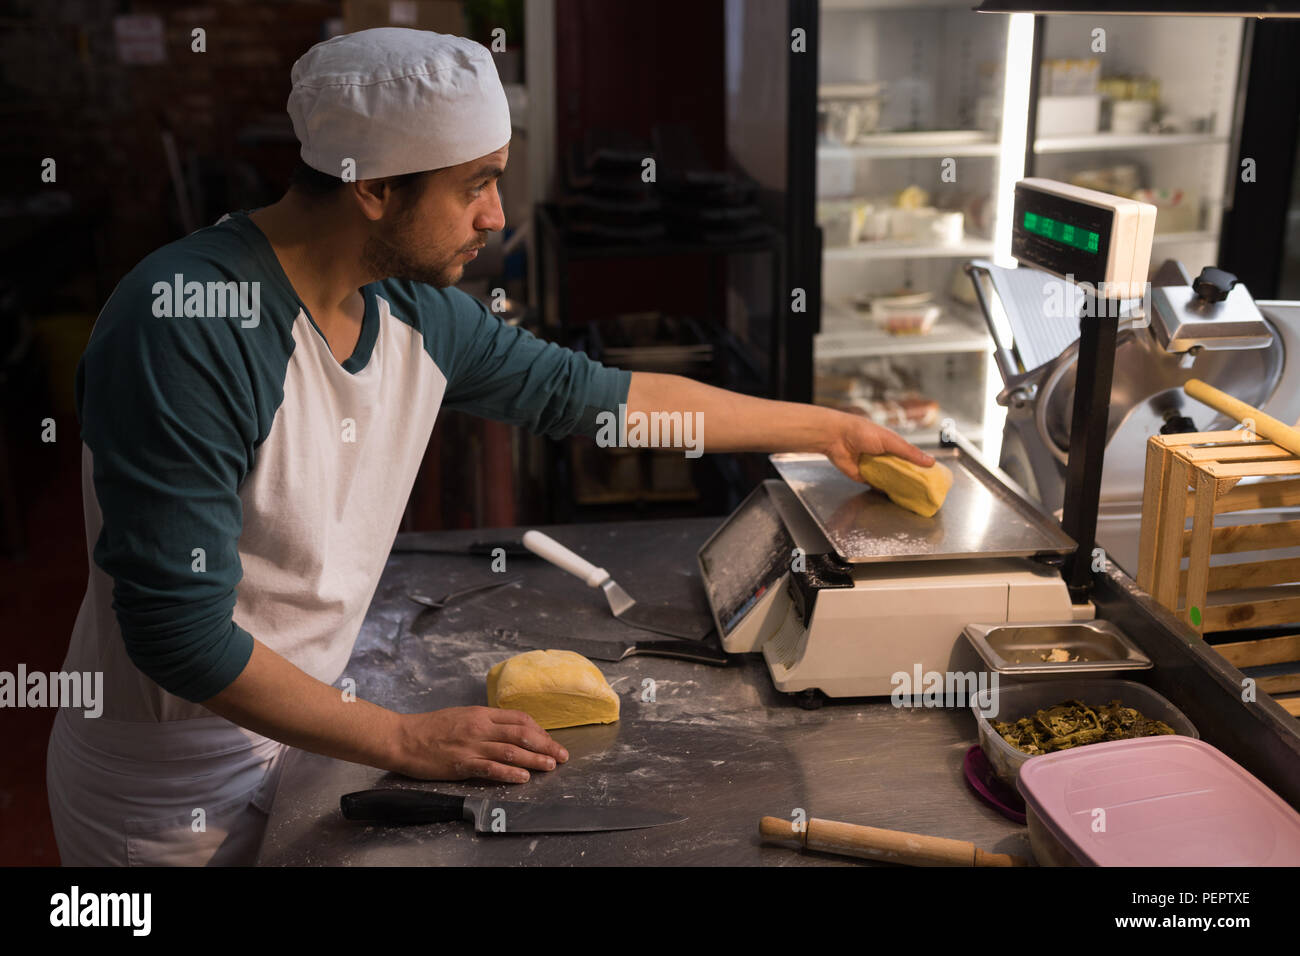 Male baker checking weight of dough - Stock Image